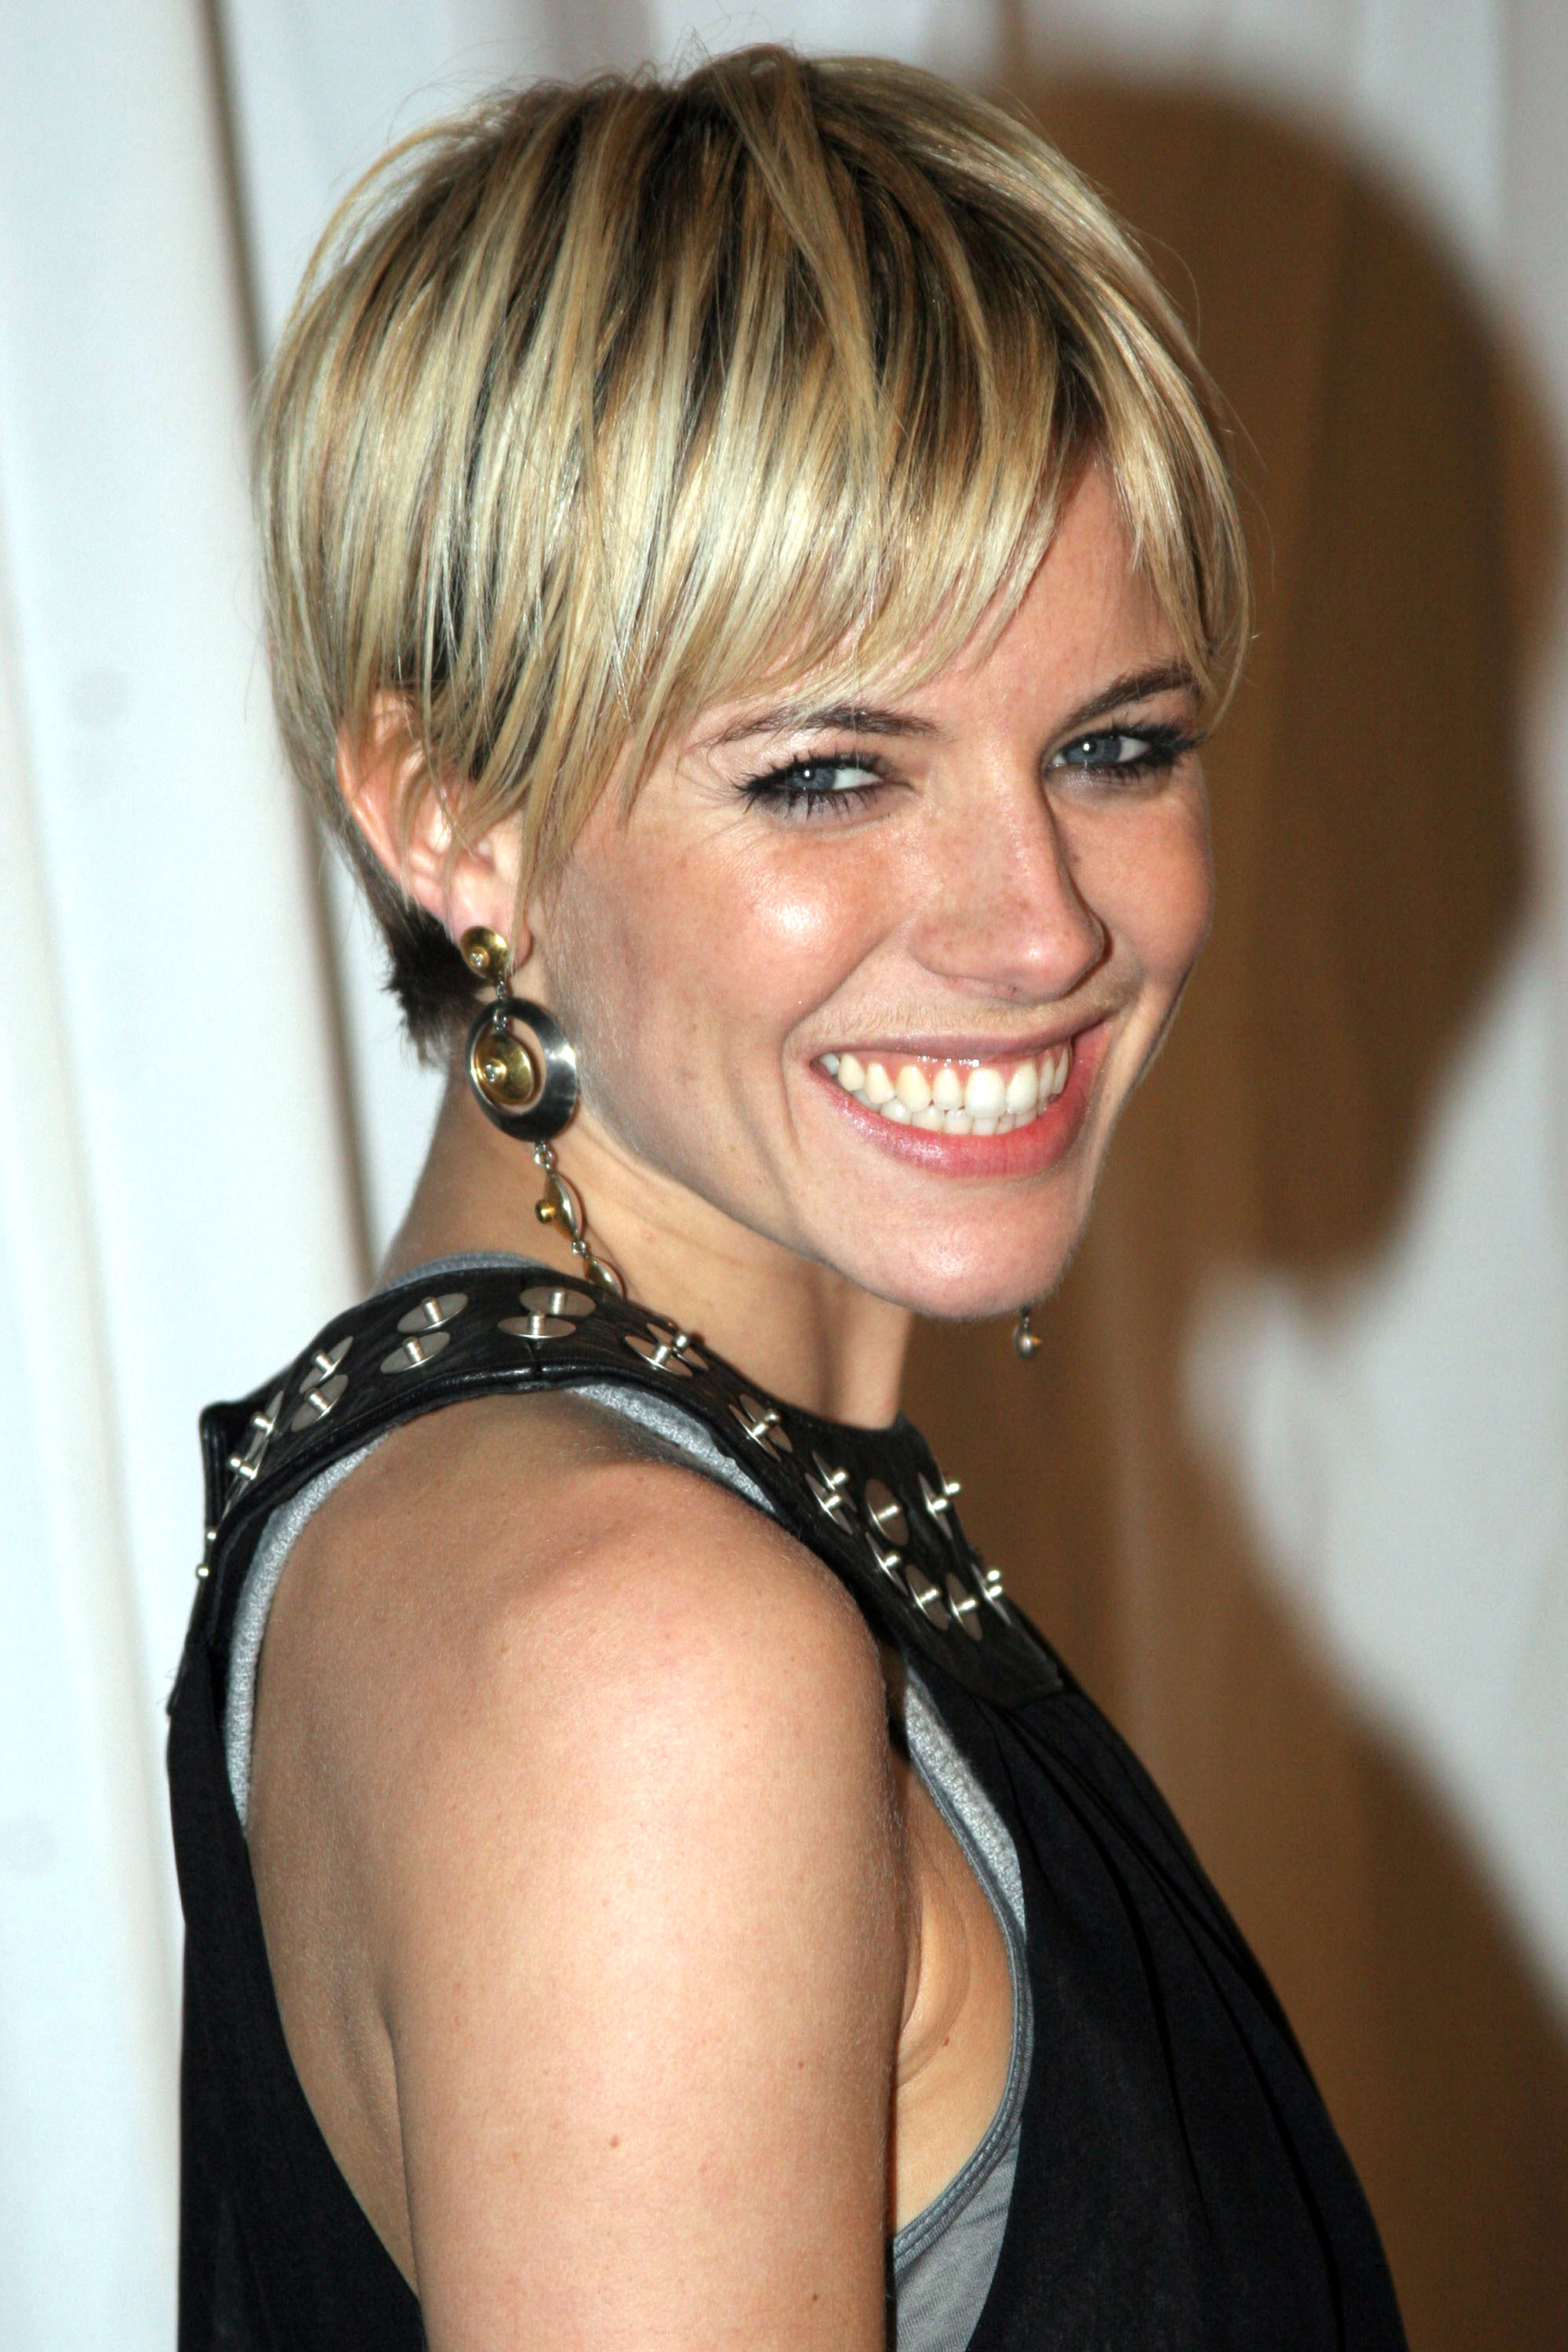 Stupendous 42 Pixie Cuts We Love For 2017 Short Pixie Hairstyles From Short Hairstyles Gunalazisus